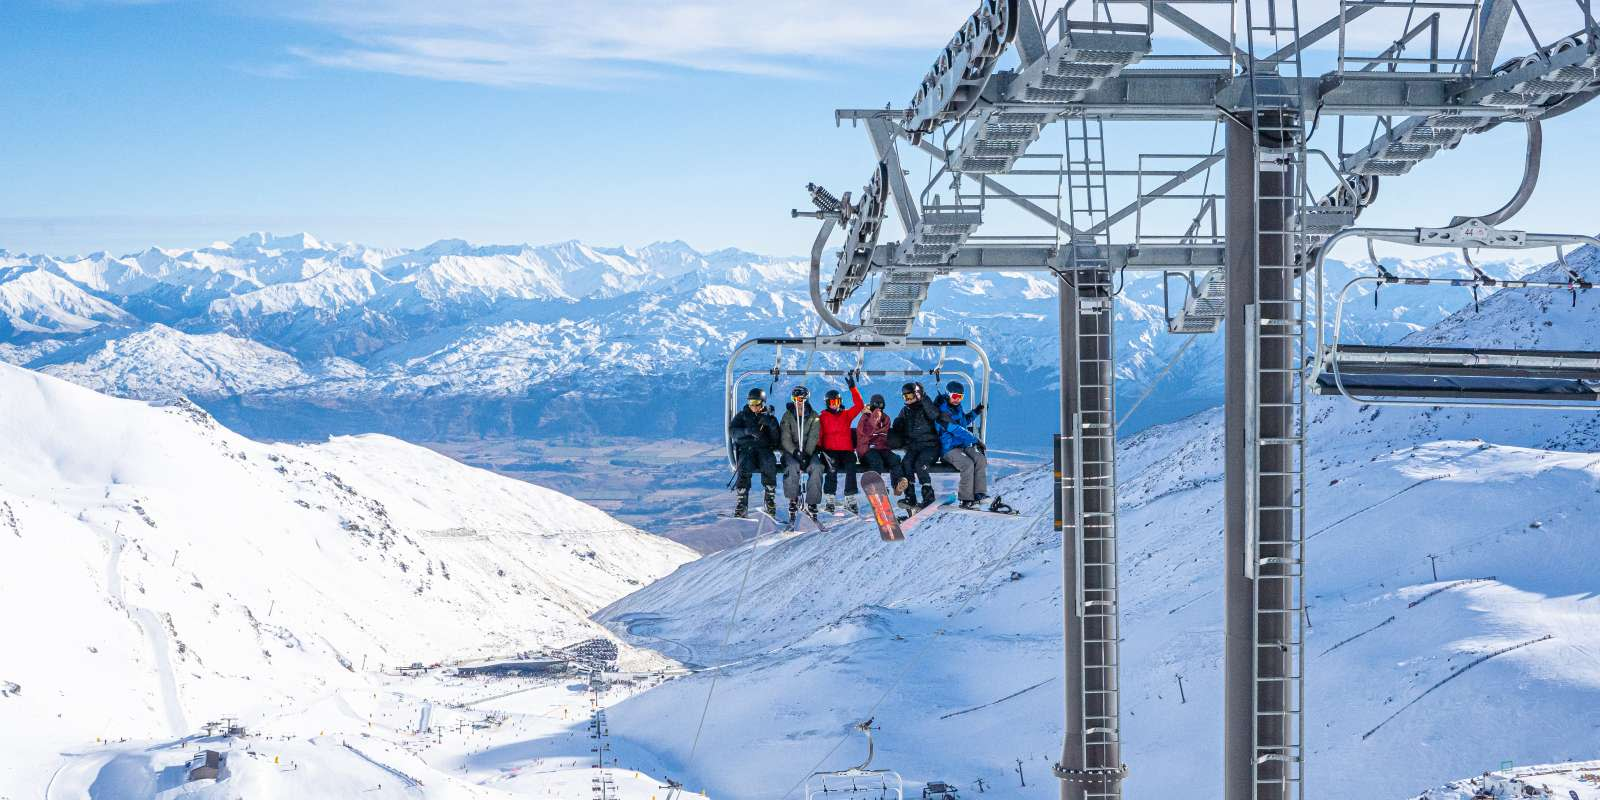 The Remarkables Ski Field Friends on Chairlift